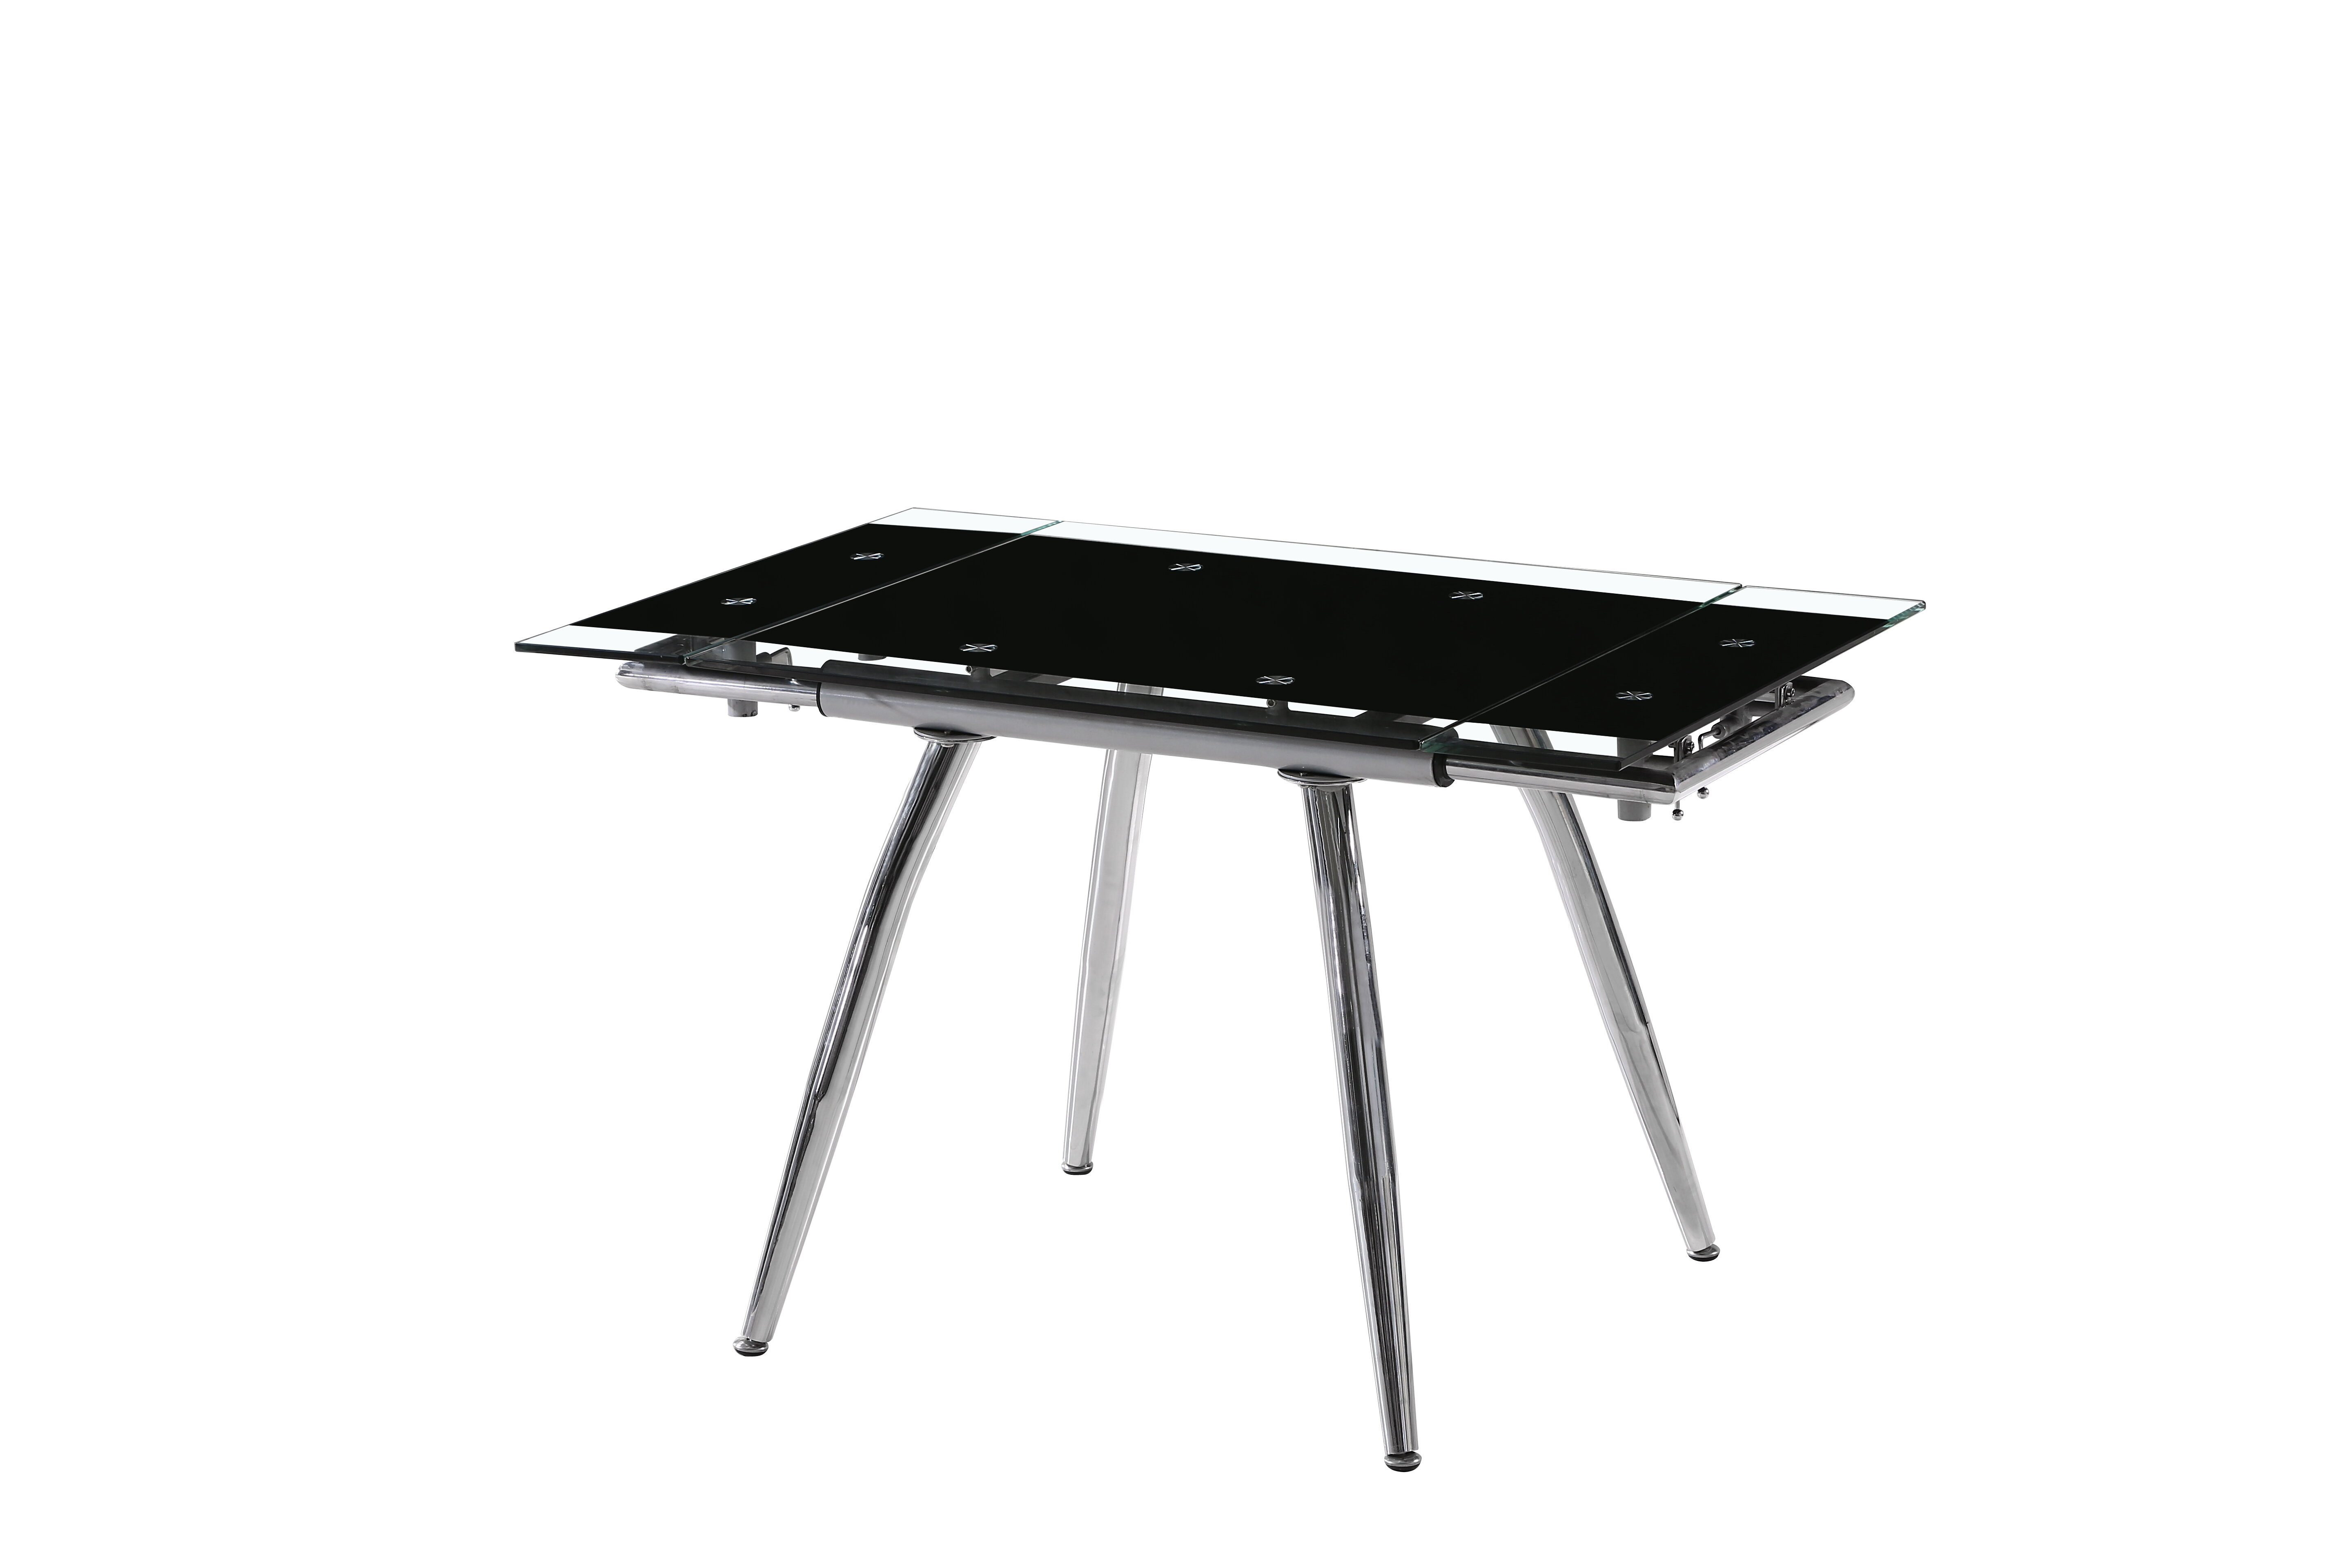 Orren Ellis Boothe Extendable Dining Table Wayfair - Dining table with built in grill